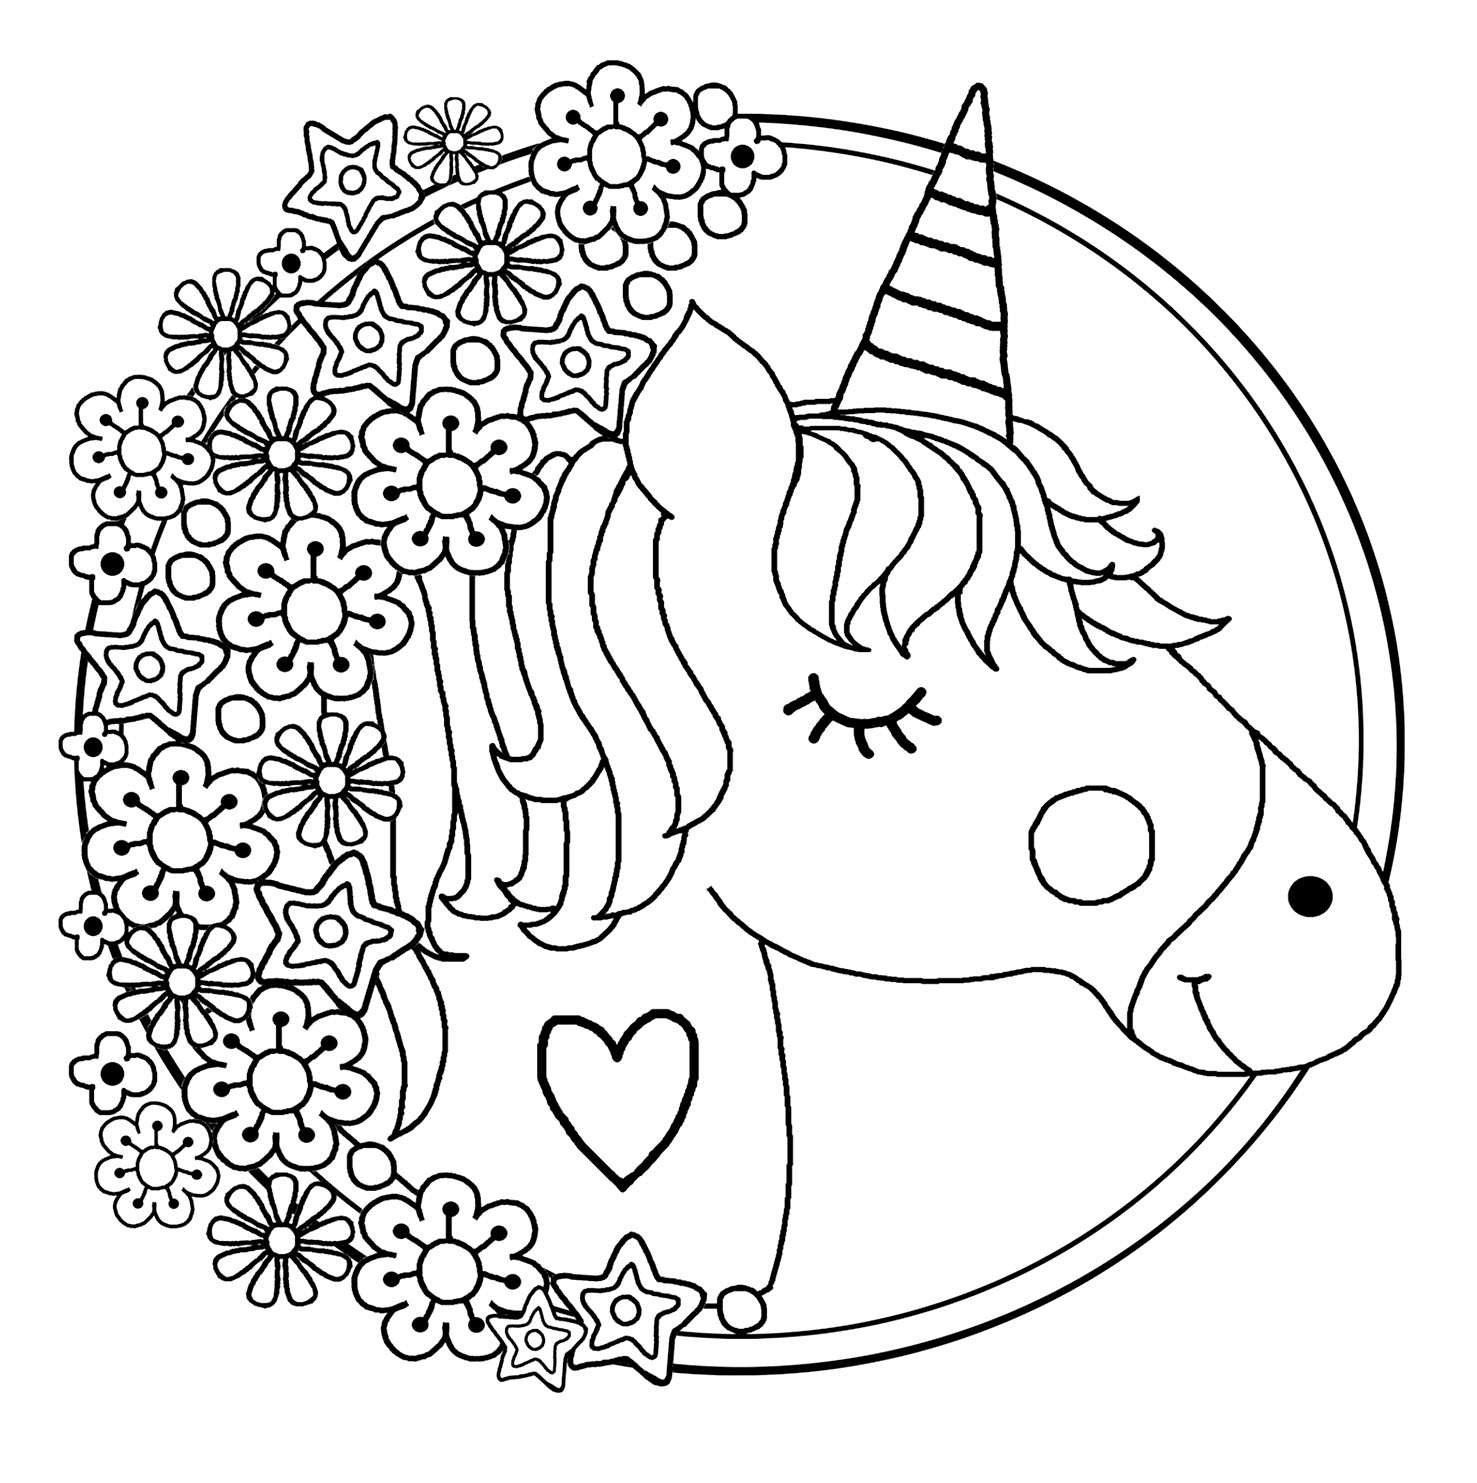 free printable coloring pages of unicorns unicorn horse coloring pages unicorn pony coloring pages free of printable pages unicorns coloring